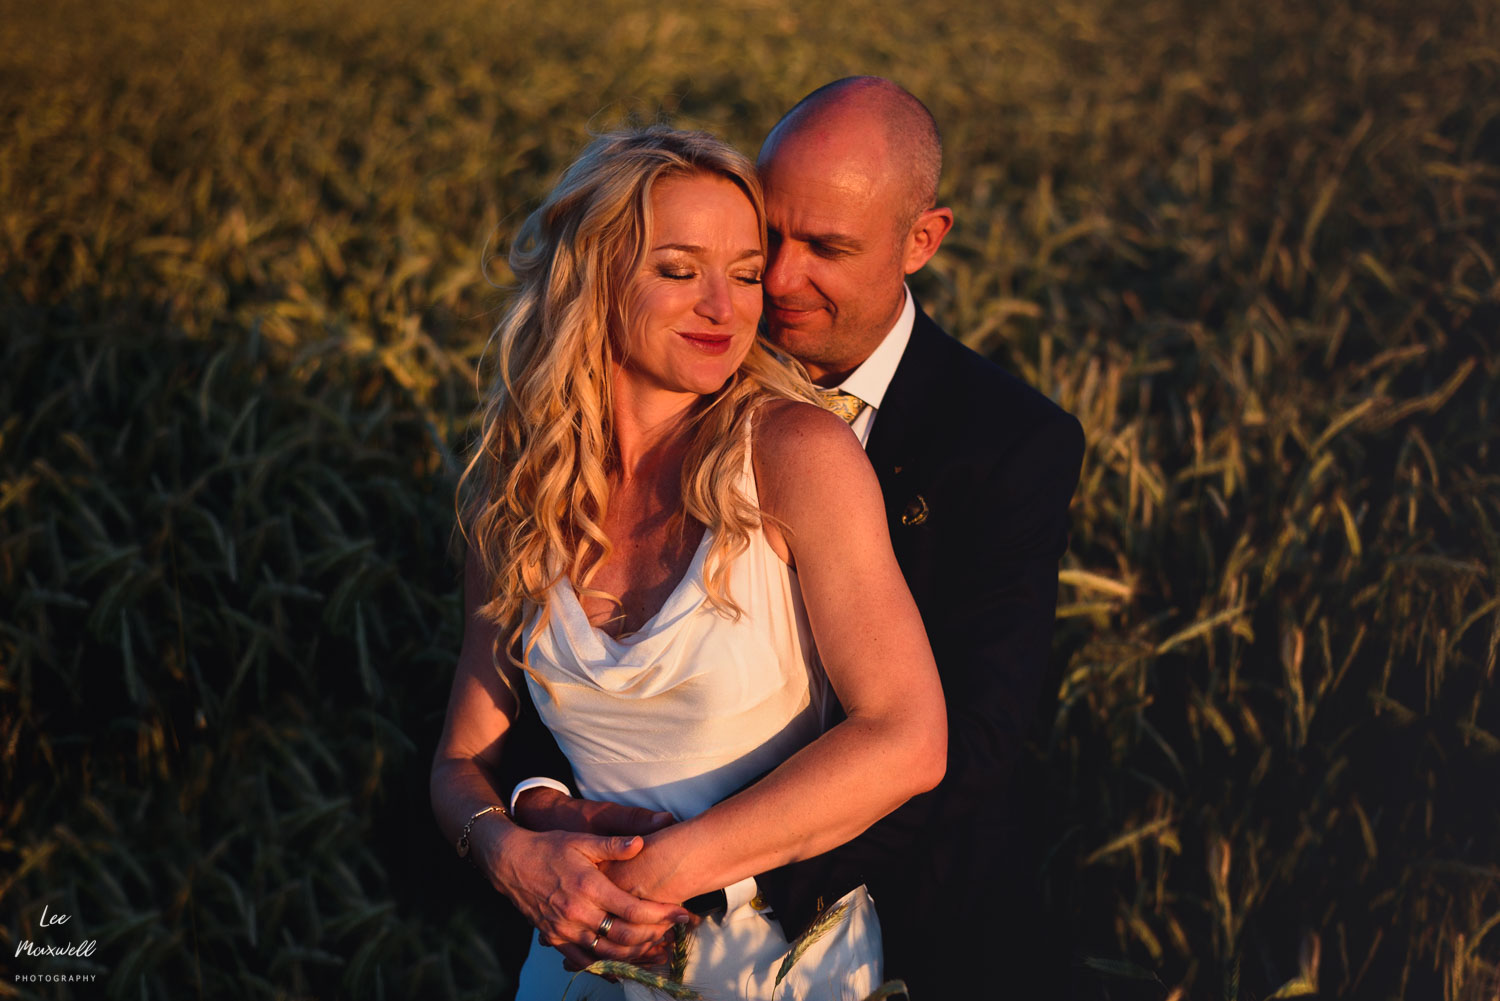 Wedding Photography At Wellington Barn, Wiltshire